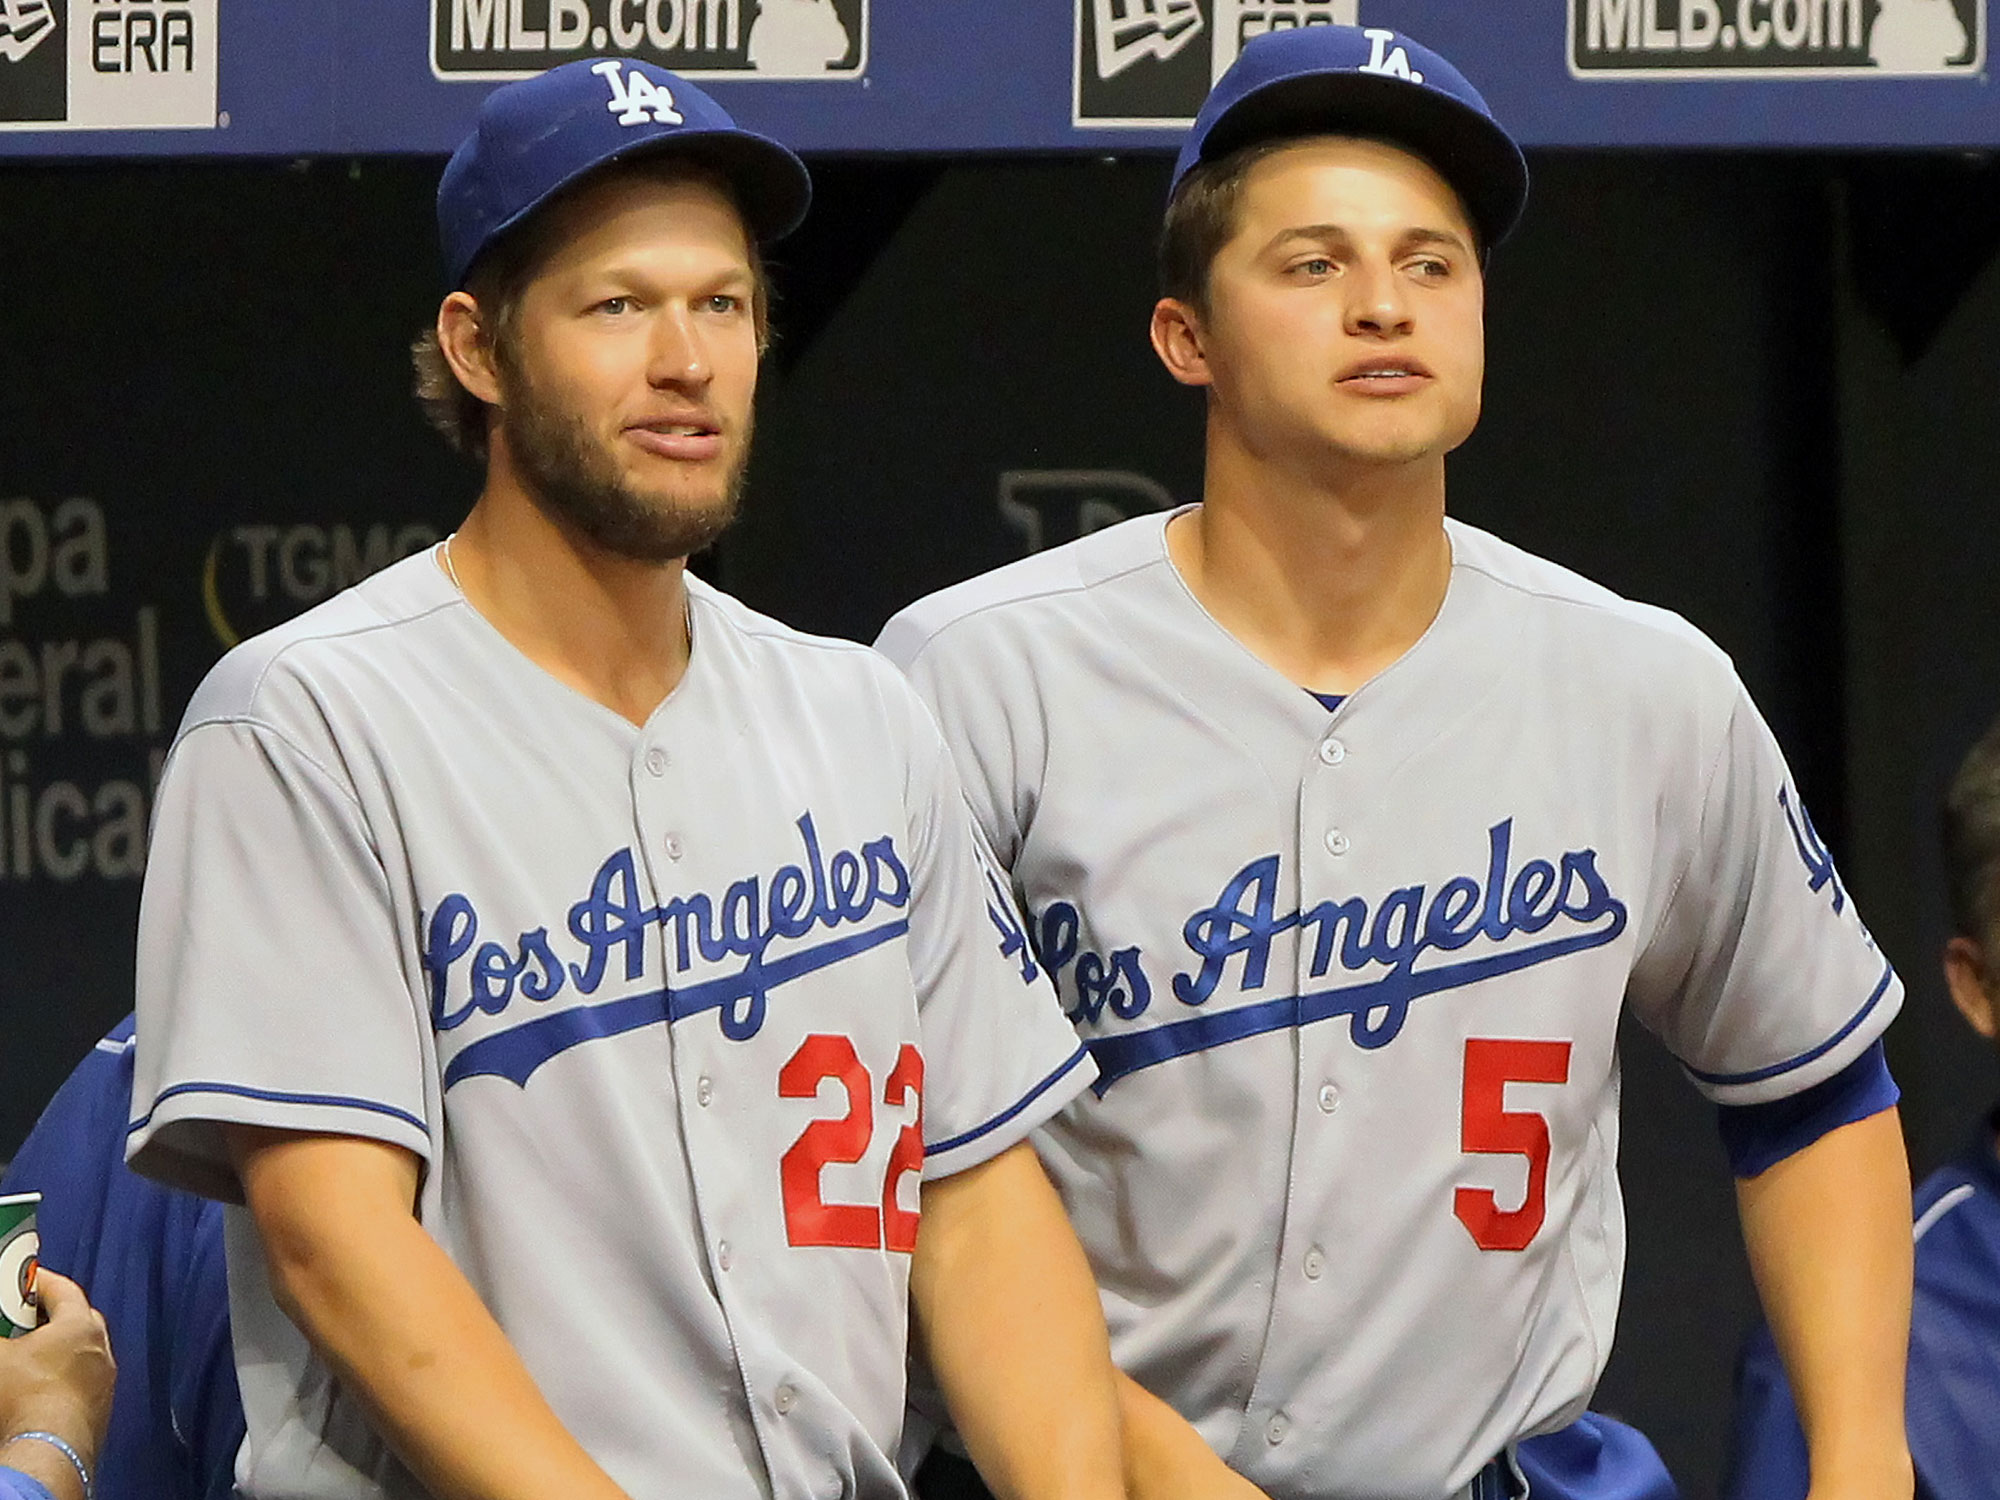 Clayton Kershaw and Corey Seger, Los Angeles Dodgers